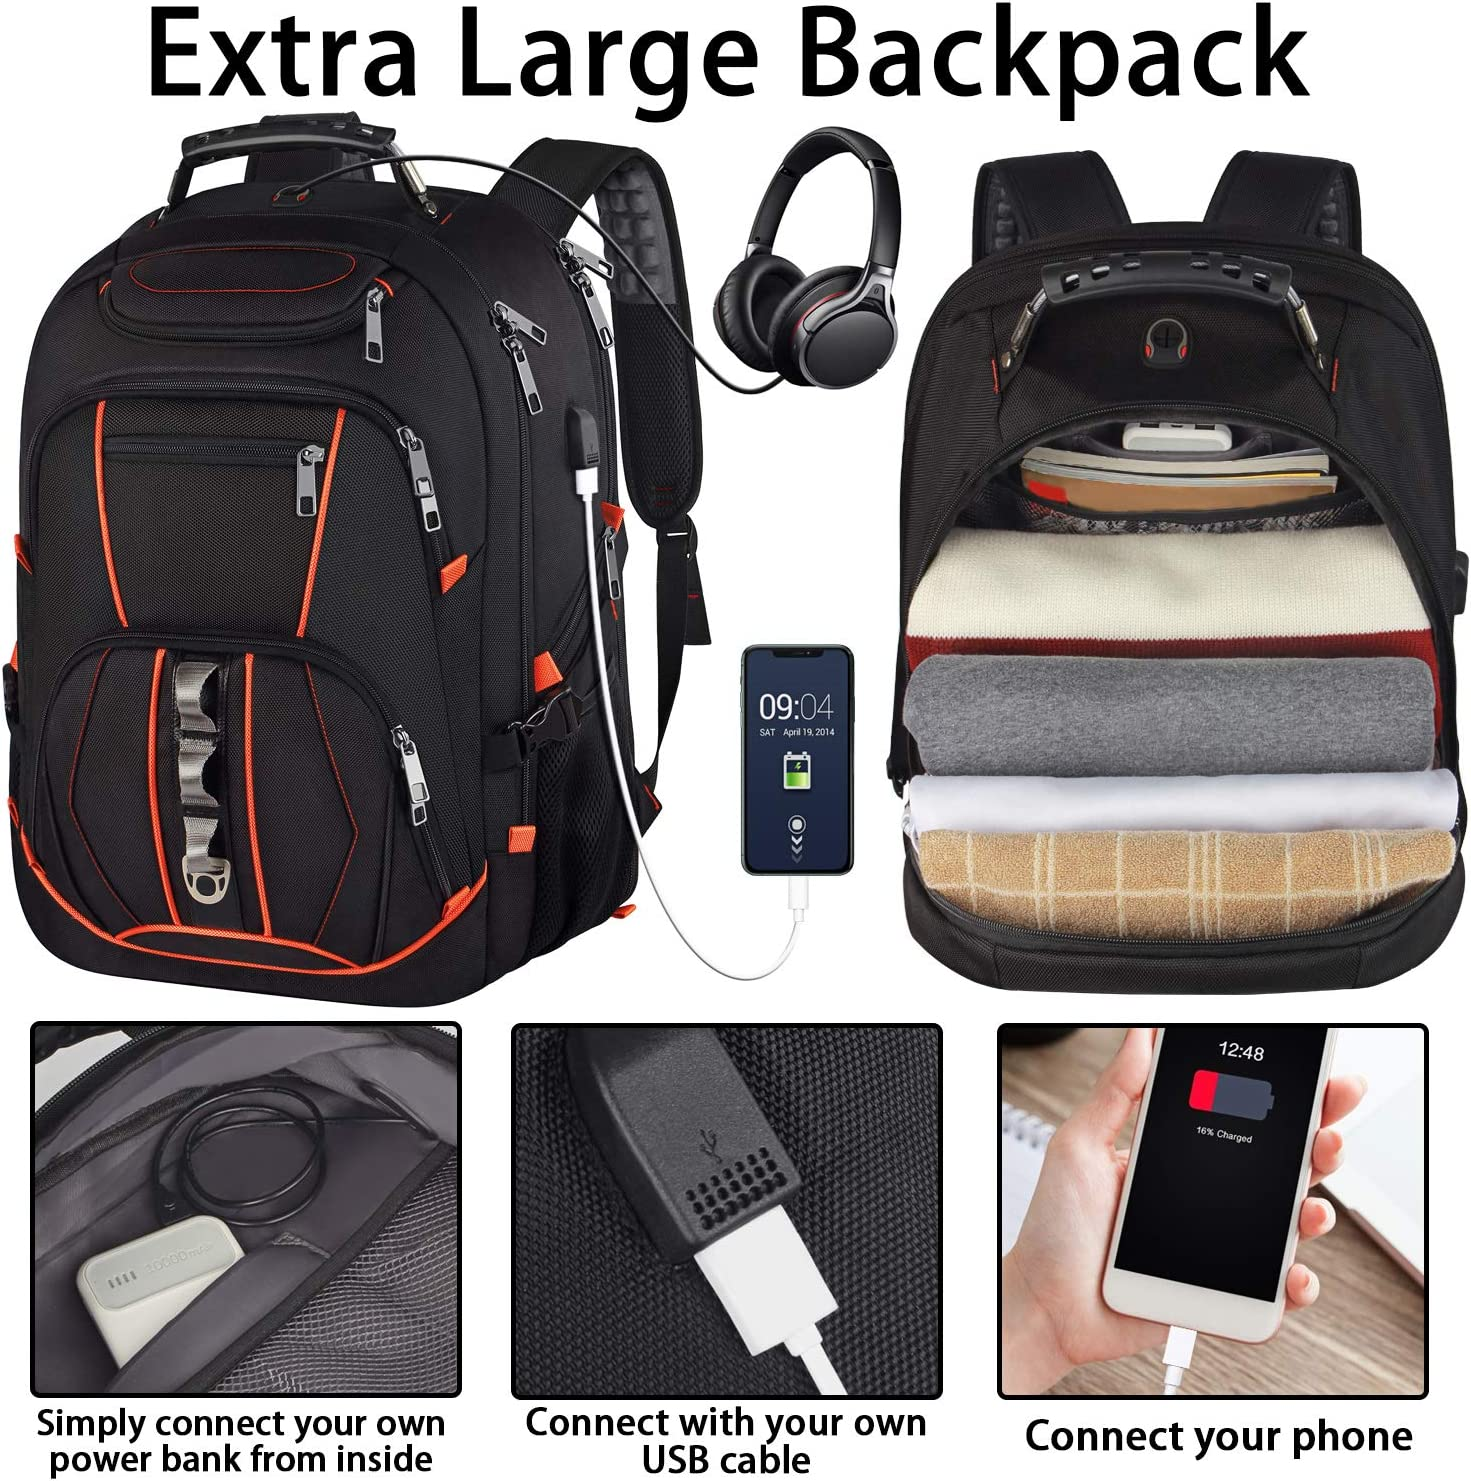 Travel Laptop Backpack,Extra Large 18.4 inch Gaming Laptop Backpacks with USB Charging Port,Big Capacity TSA Friendly RFID Anti Theft Pocket Durable College School Heavy Duty Computer Bookbag for Men